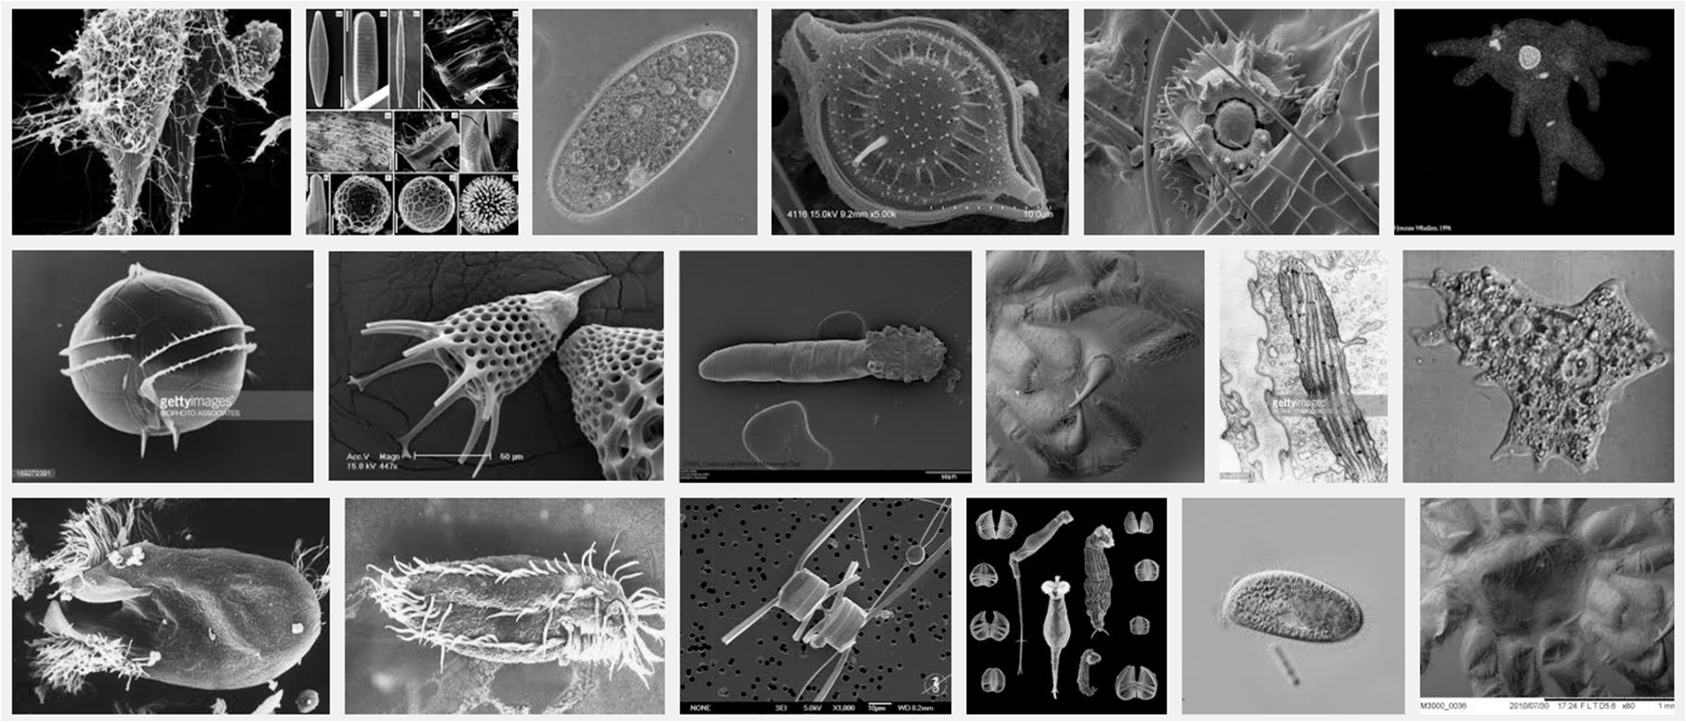 unicellular organism essay This microscopic organism is helping to fill the evolutionary gap in our understanding the two year research project was a global collaboration between kansas state university, universities of.